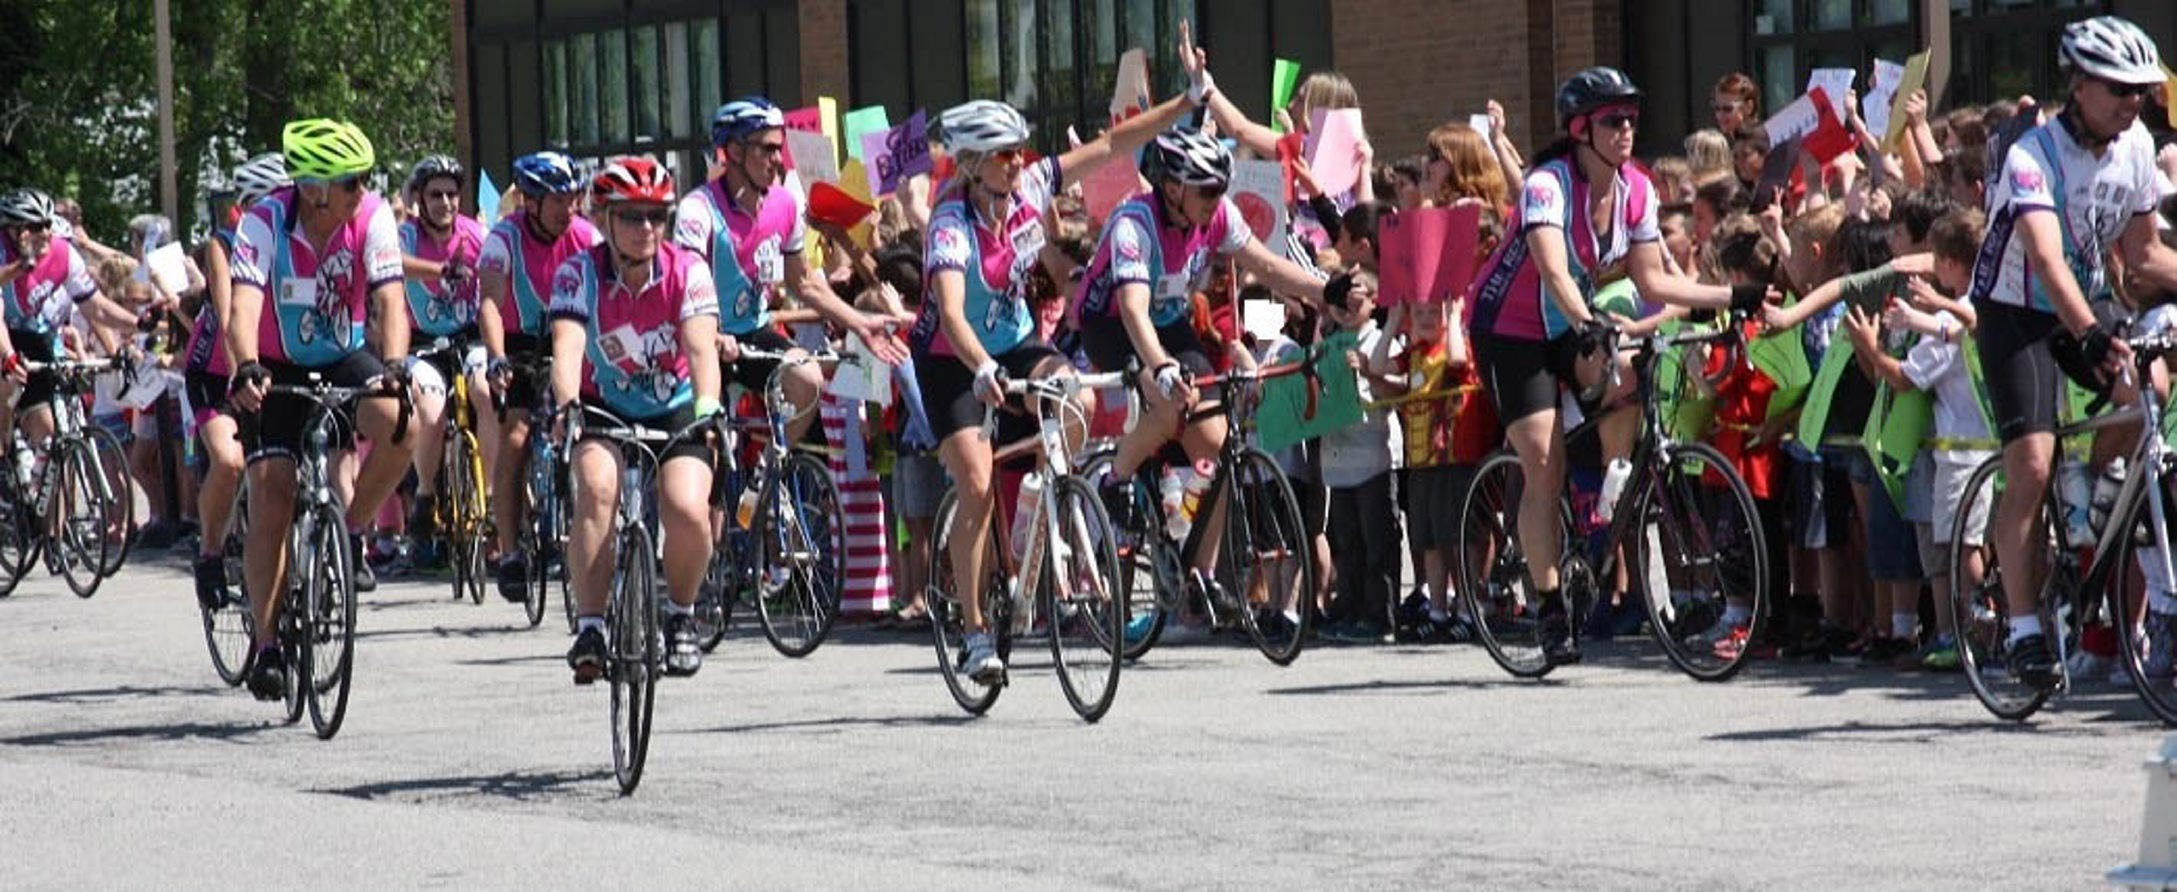 The 9th annual Ride for Missing Children is expected to draw more than 100 cyclists, who will pedal 100 miles through Niagara and Erie counties Friday.